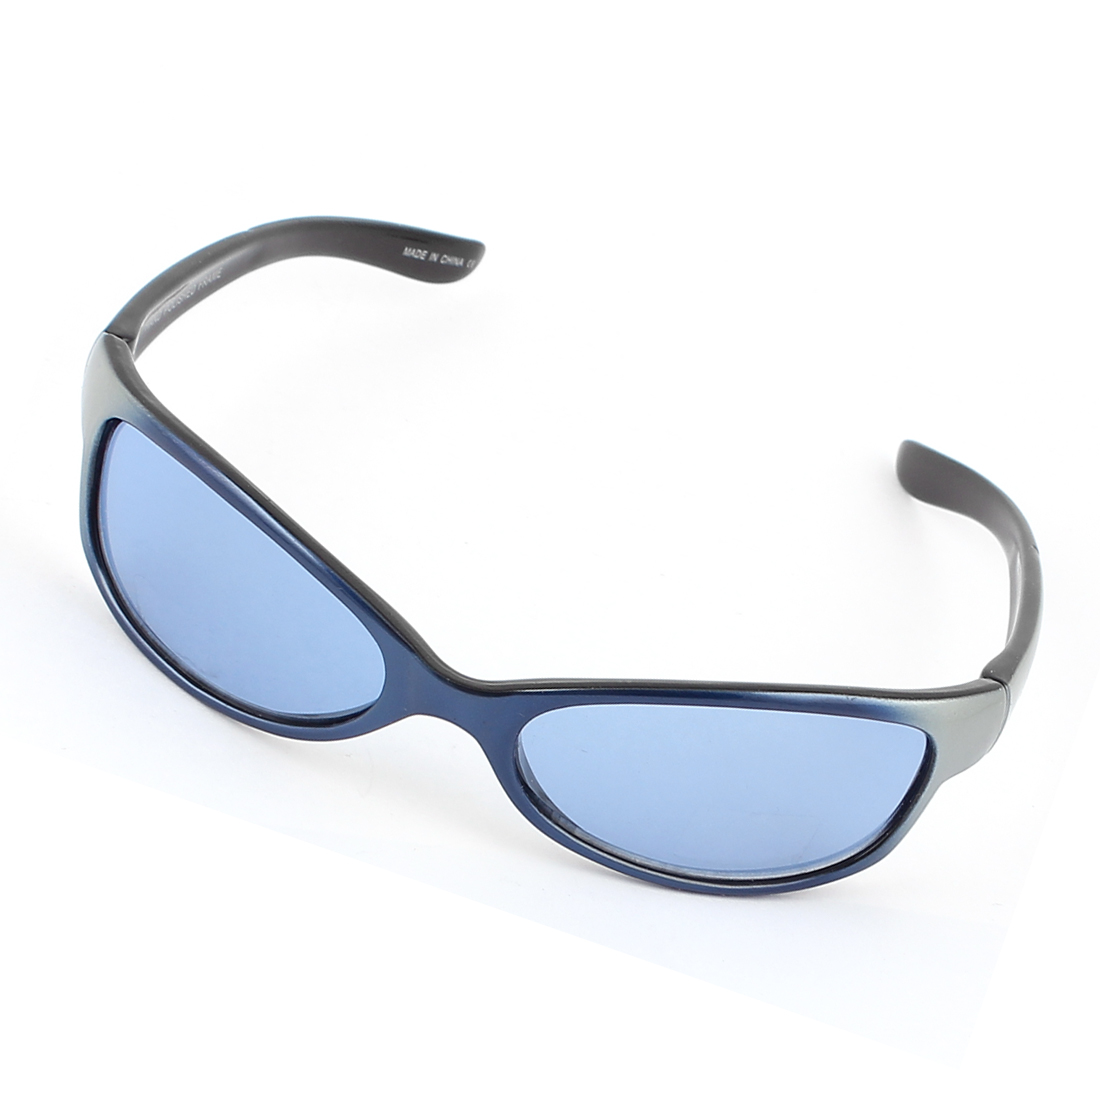 Lady Cats Eye Outdoor Sunglasses Driving Eyewear Glasses Shades Blue